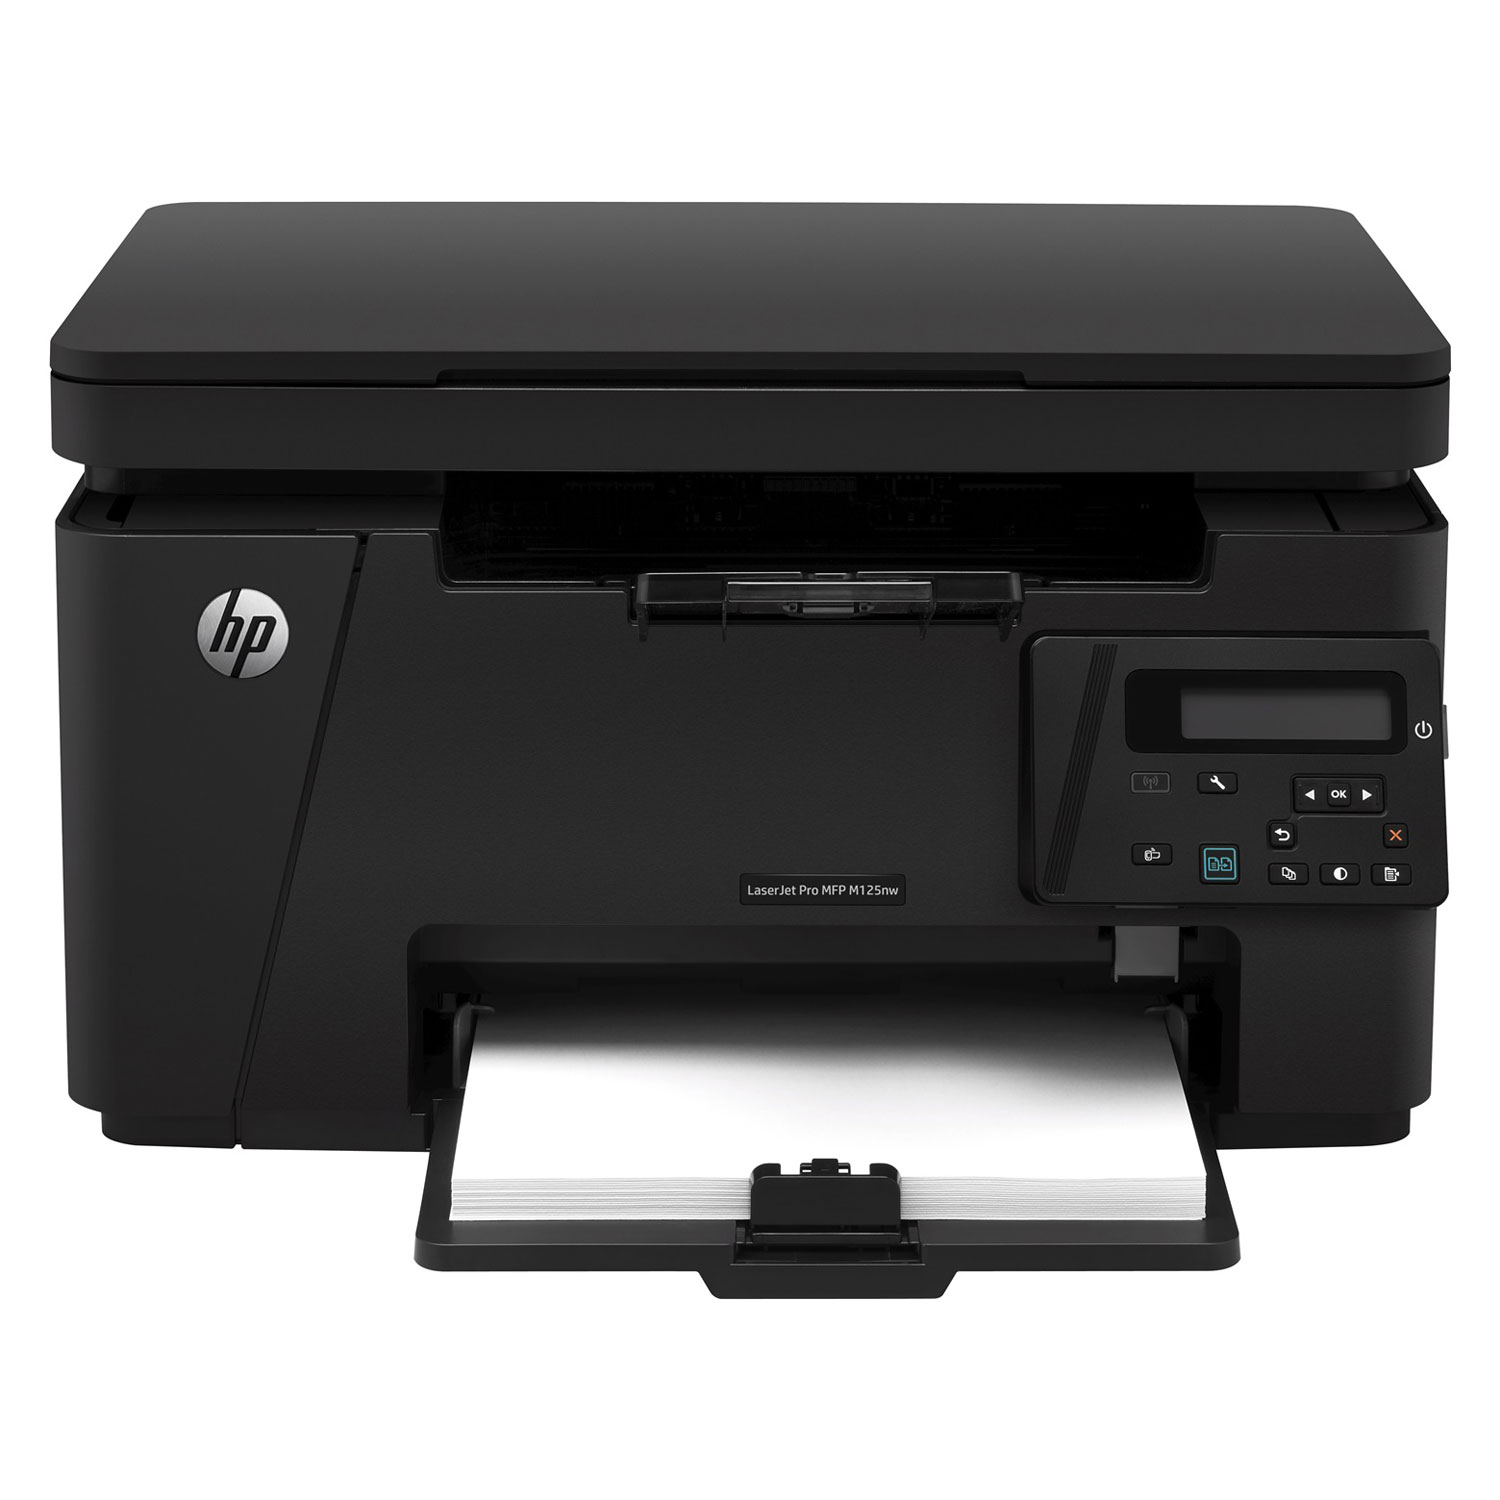 hp laserjet pro mfp m125nw imprimante multifonction hp sur ldlc. Black Bedroom Furniture Sets. Home Design Ideas